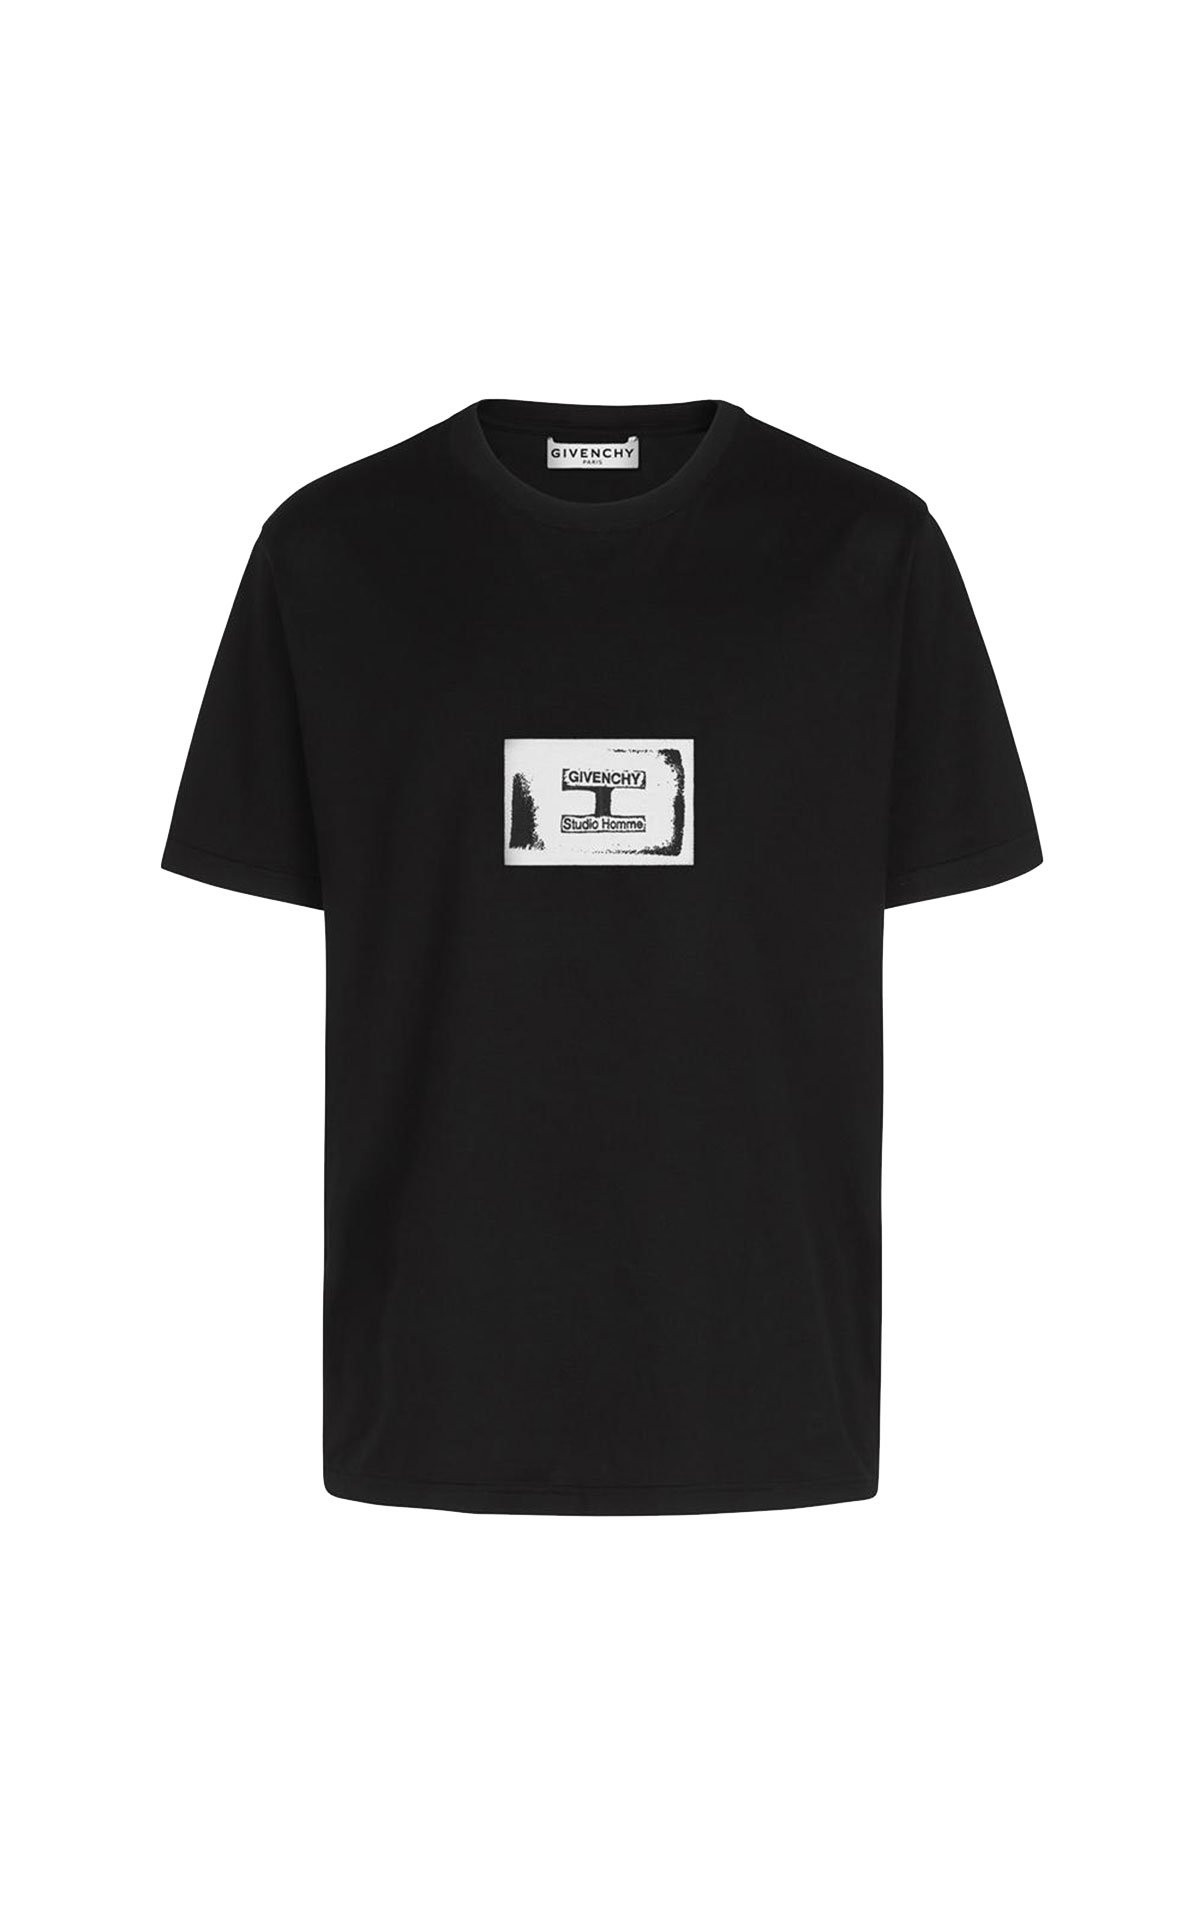 Givenchy Studio homme t-shirt from Bicester Village